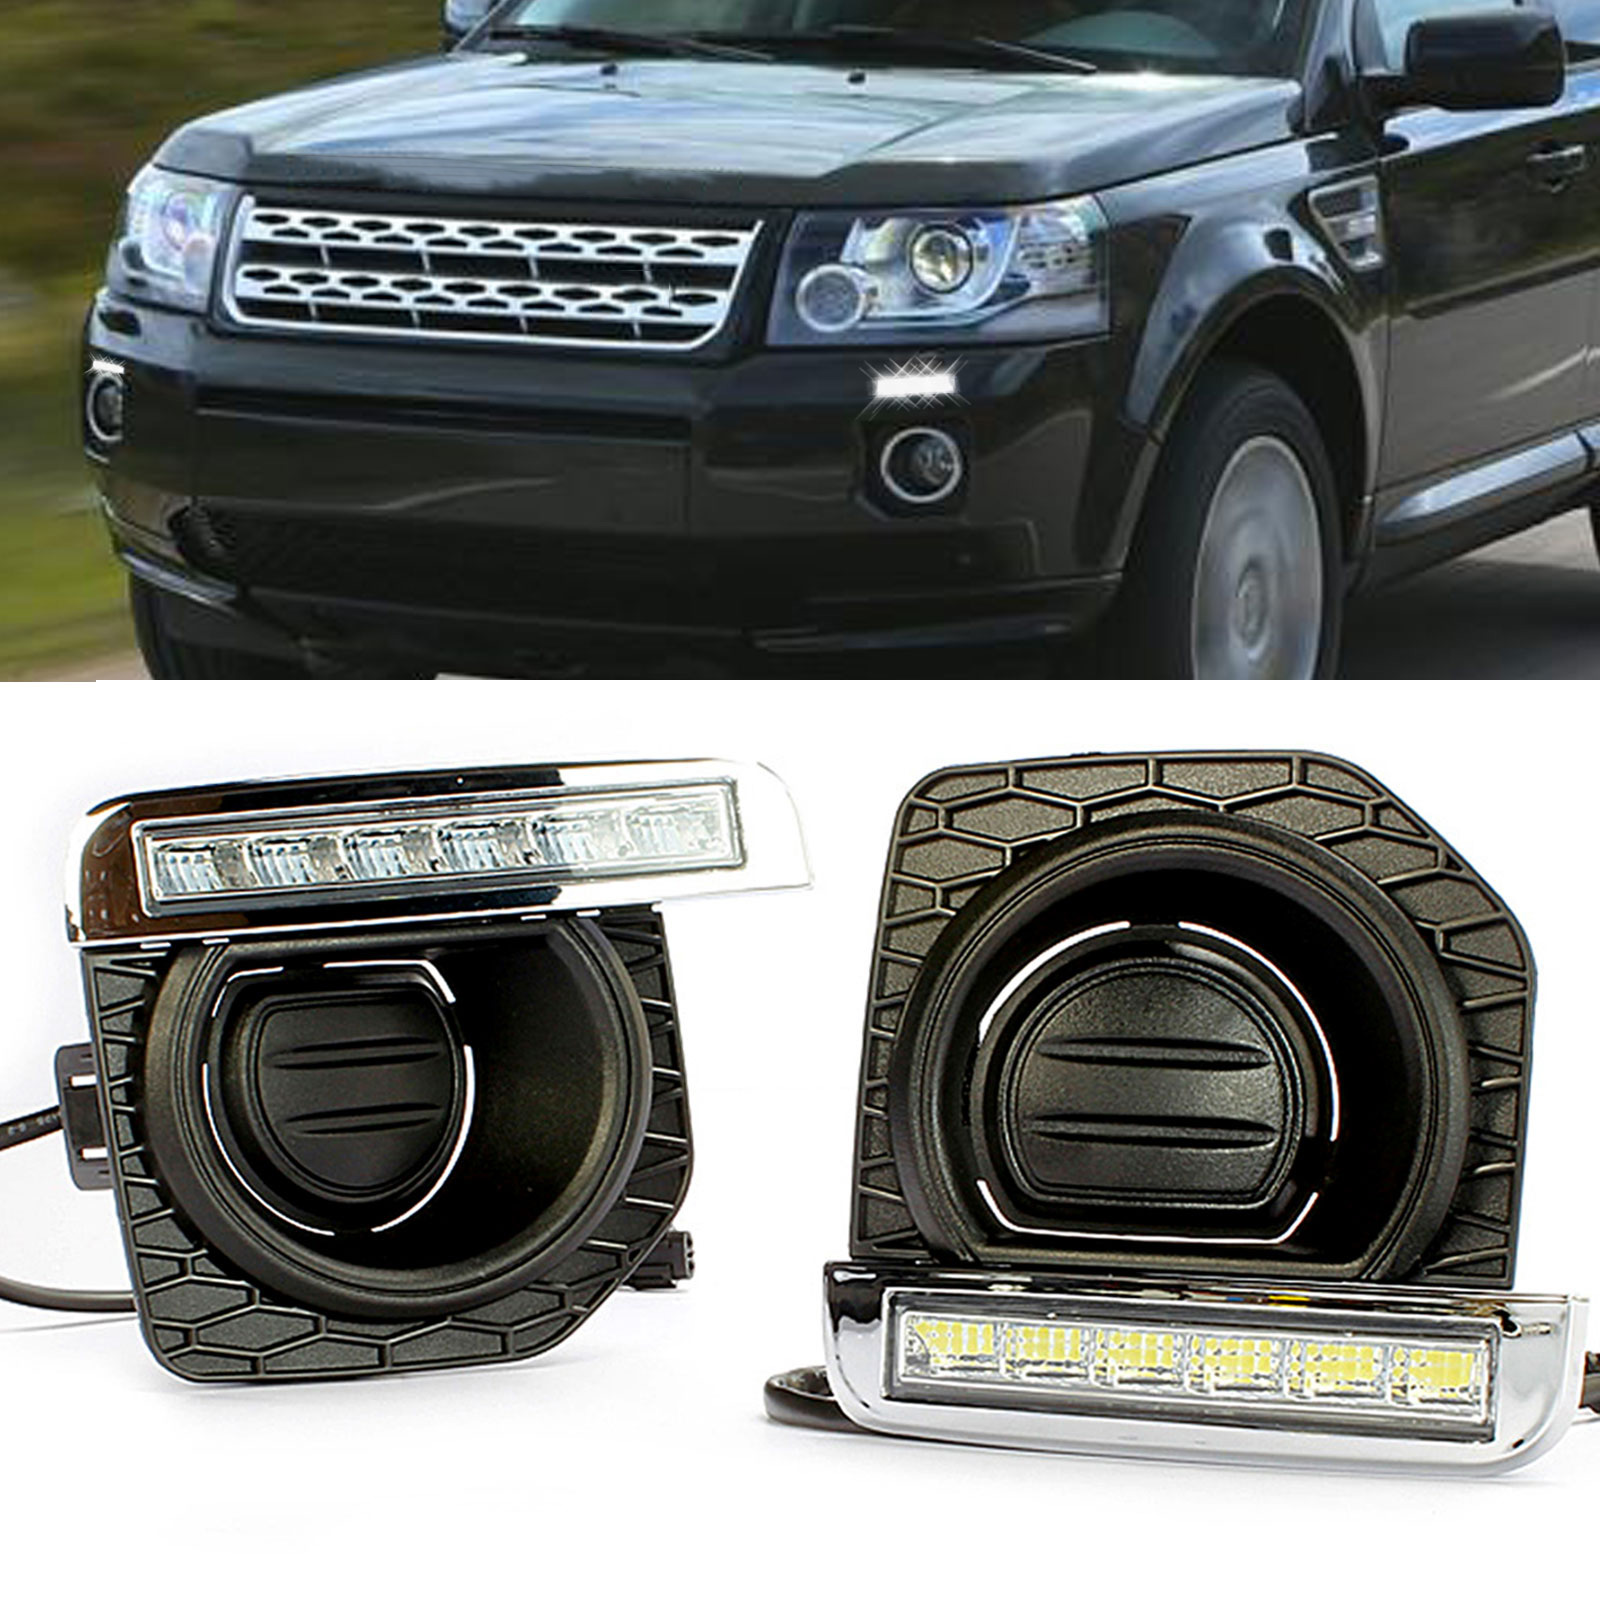 1pair LED Daytime Running Light For Land Rover RL2 DRL Fog 2011 2012 2013 2014 2015 for land rover lr4 discovery 4 trunk security shield cargo cover shade beige 2010 2011 2012 2013 2014 2015